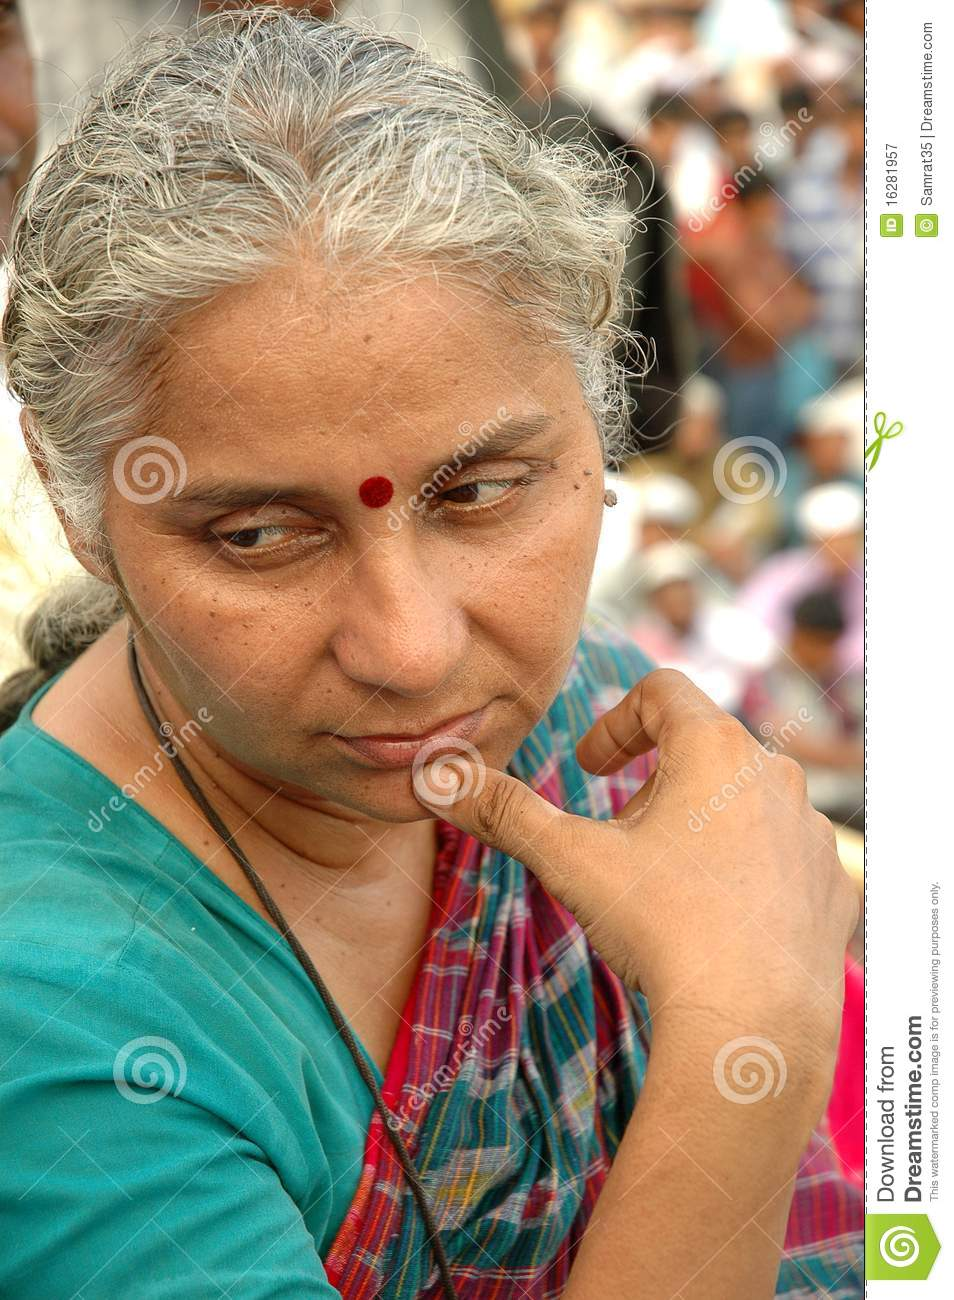 contribution of medha patkar to indian Contributions of medha patkar, the eminent social activist of india, are numerous which have aided the betterment of common man greatlyshe has launched and led several movements for the cause of social, political and economic equality and justice in the country.